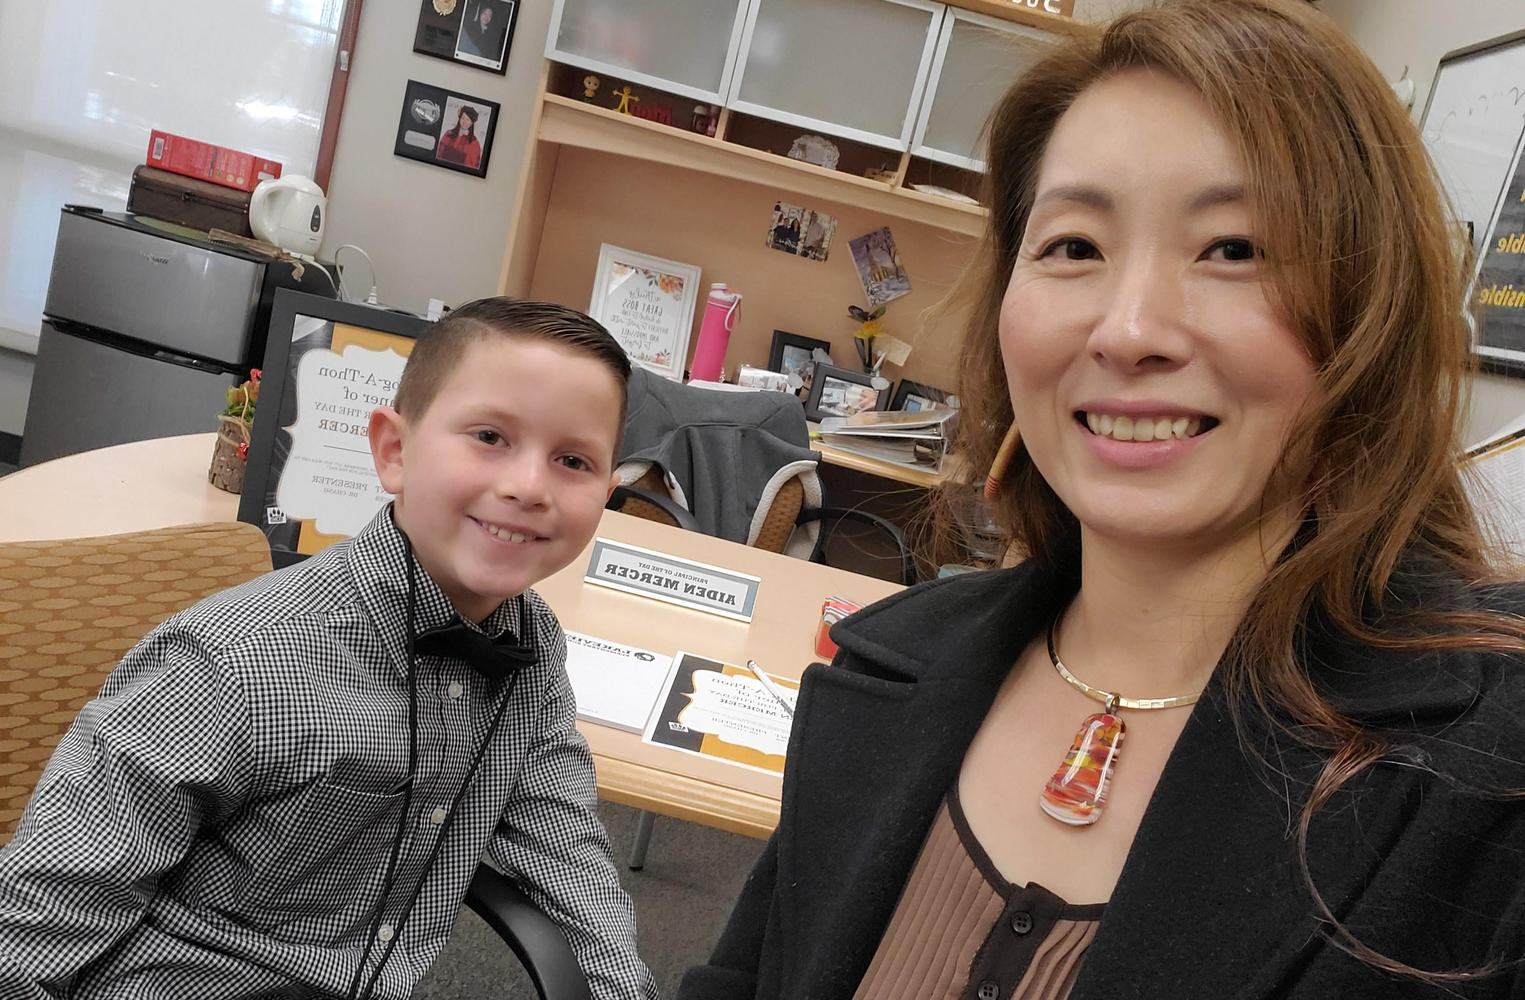 JOT winner principal for a day